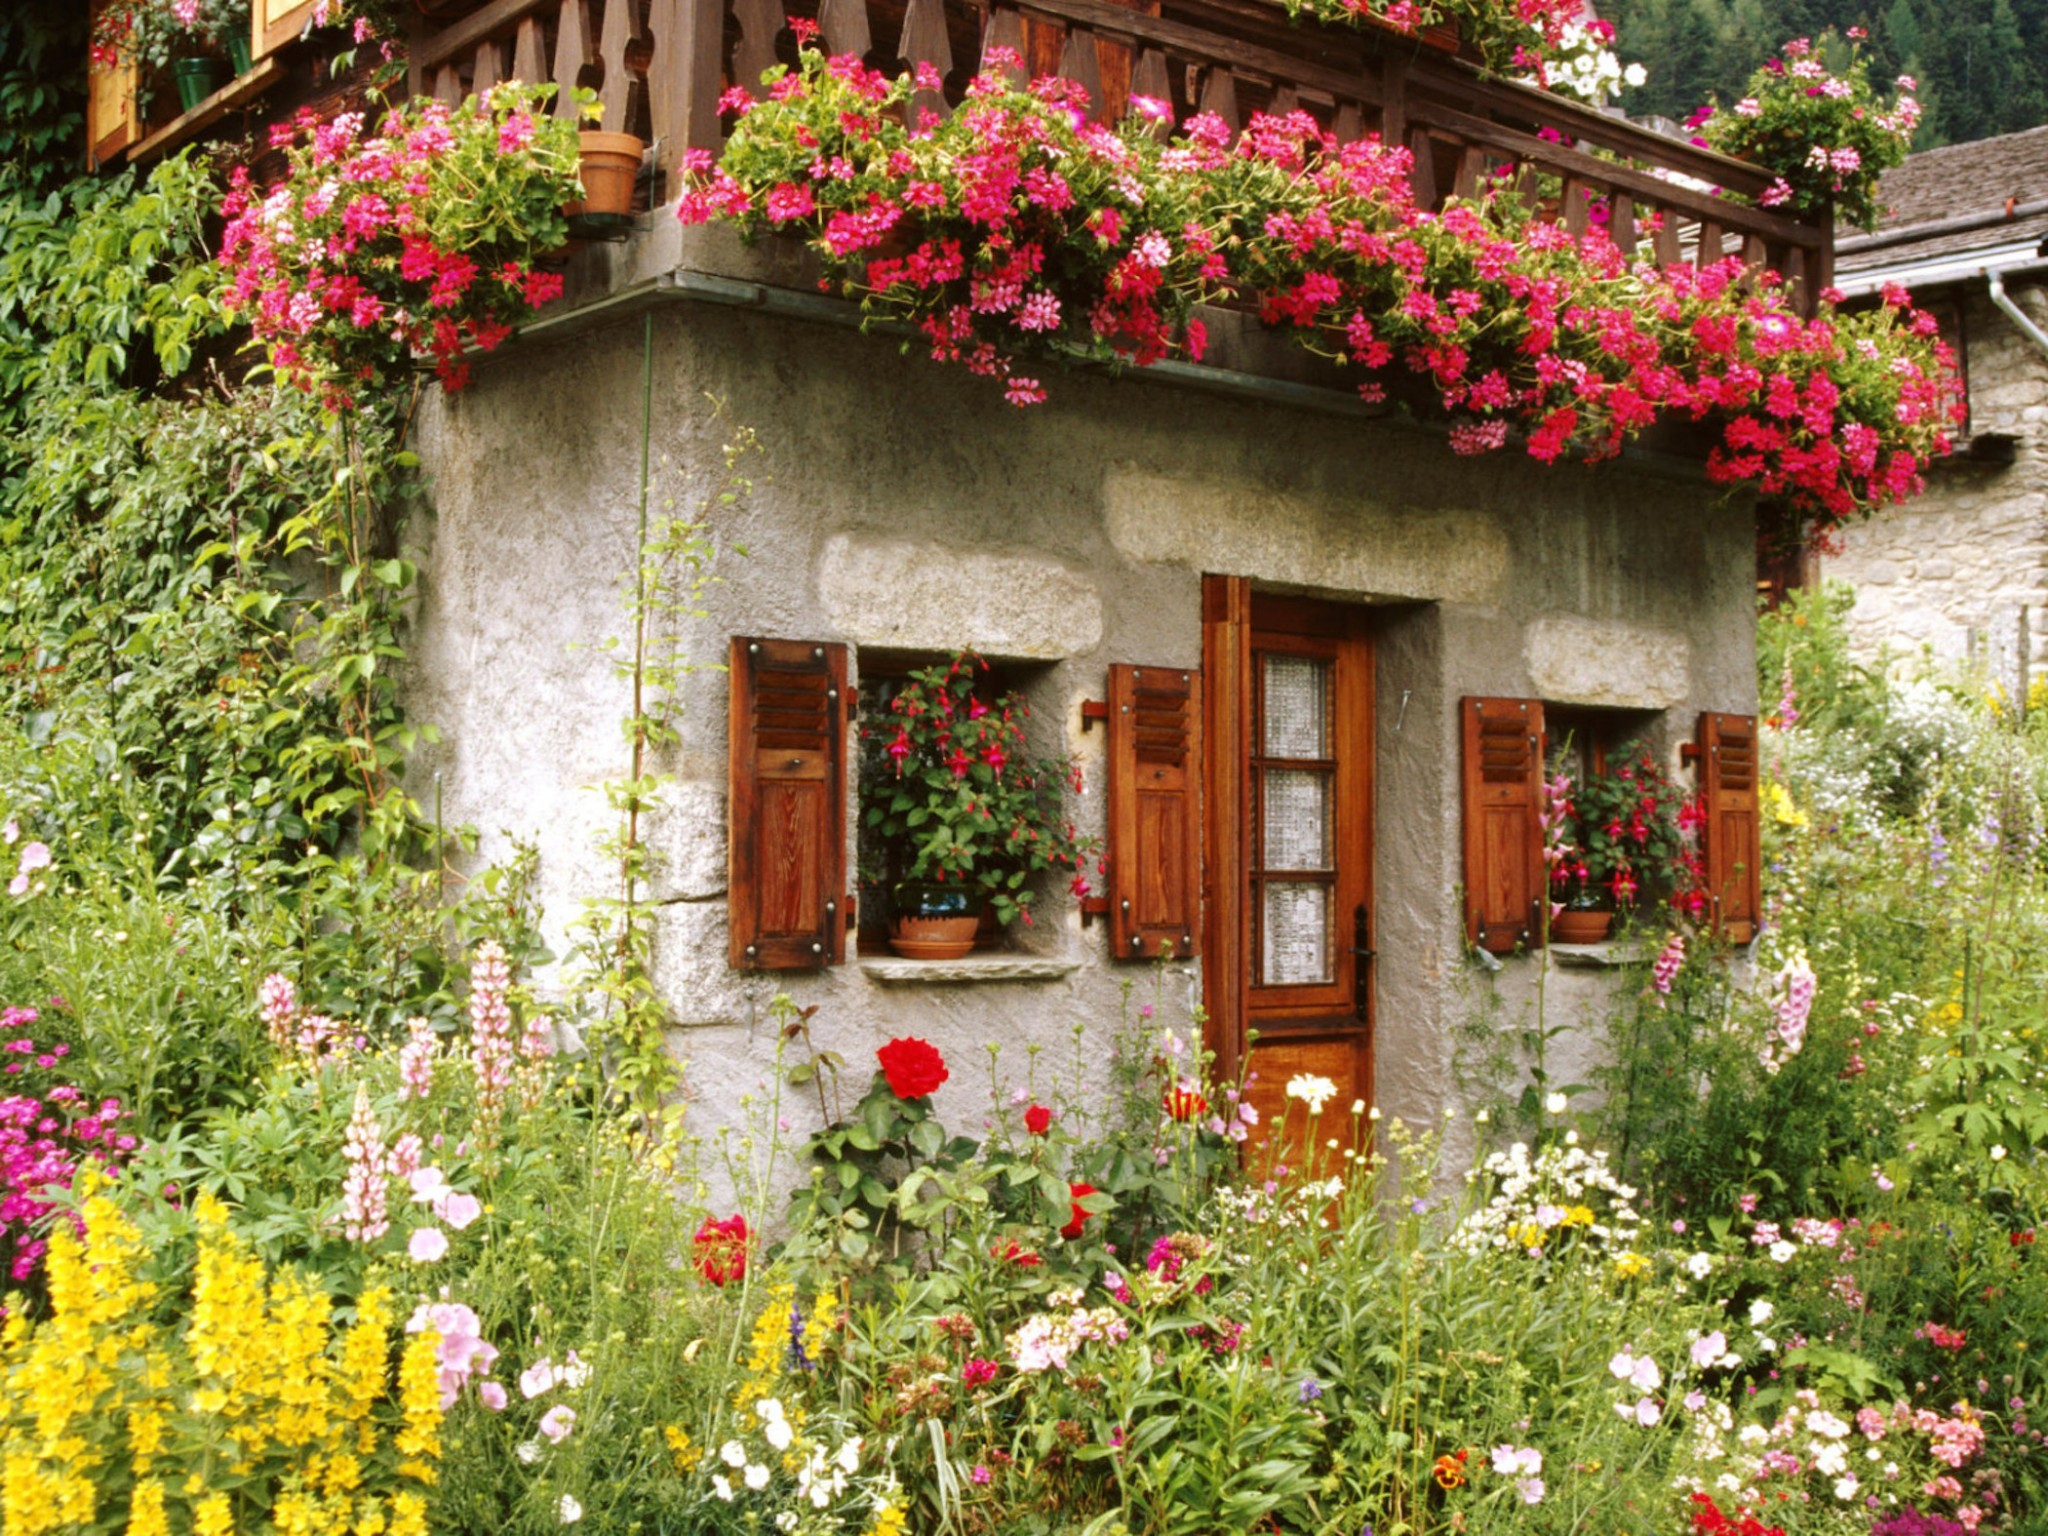 Lovely english cottage garden wallpaper free downloads for Wallpaper ideas for your home